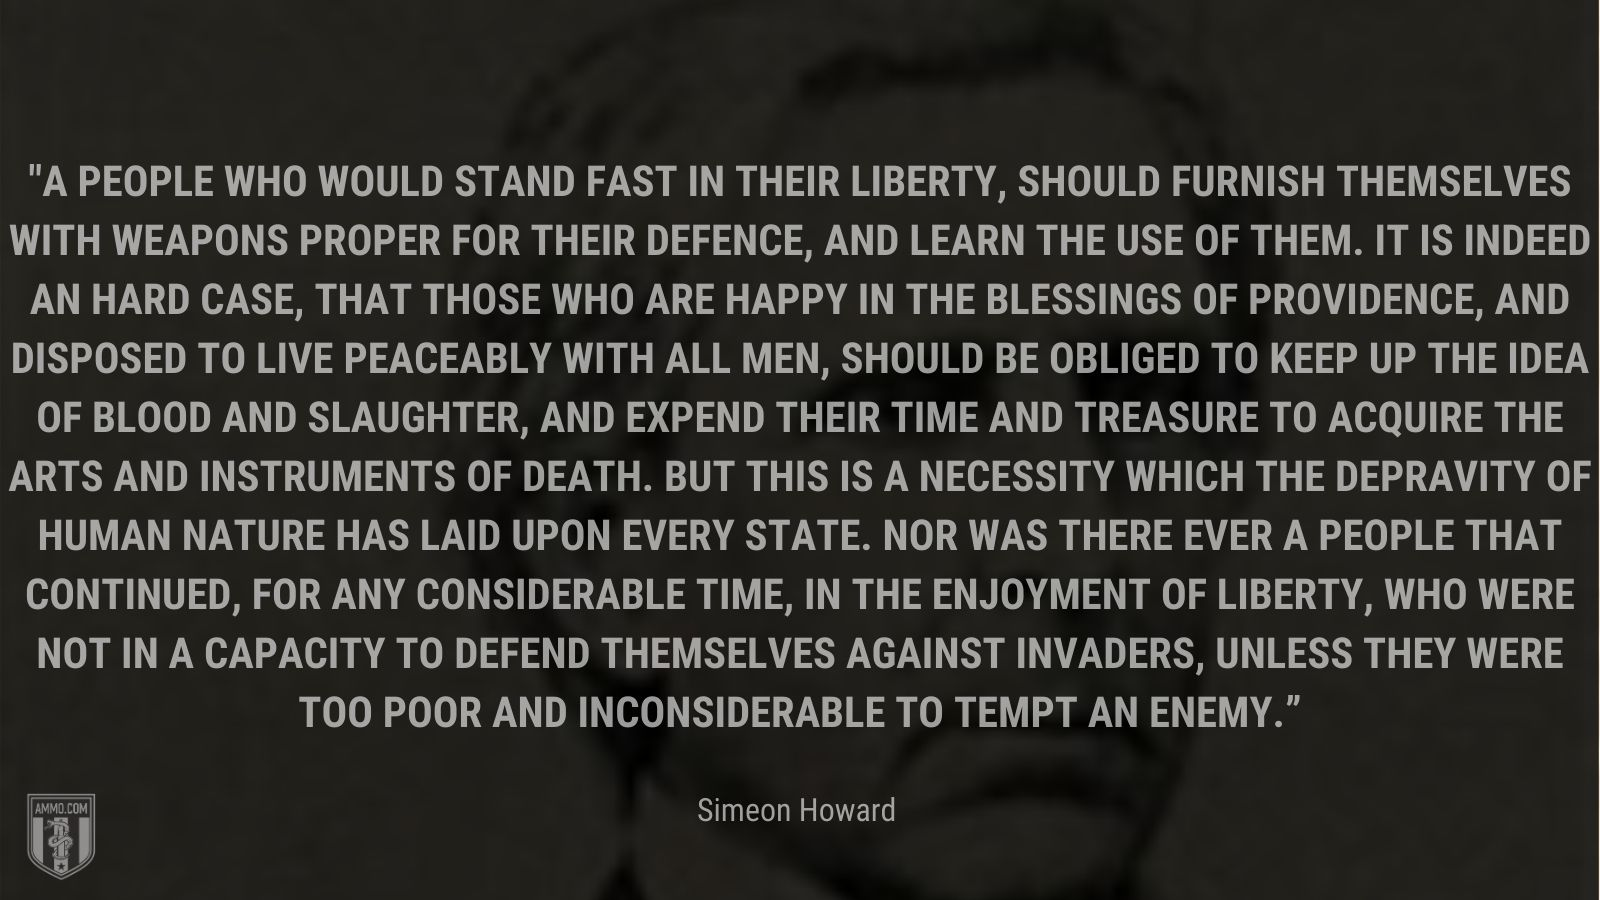 """""""A people who would stand fast in their liberty, should furnish themselves with weapons proper for their defence, and learn the use of them. It is indeed an hard case, that those who are happy in the blessings of providence, and disposed to live peaceably with all men, should be obliged to keep up the idea of blood and slaughter, and expend their time and treasure to acquire the arts and instruments of death. But this is a necessity which the depravity of human nature has laid upon every state. Nor was there ever a people that continued, for any considerable time, in the enjoyment of liberty, who were not in a capacity to defend themselves against invaders, unless they were too poor and inconsiderable to tempt an enemy."""" - Simeon Howard"""